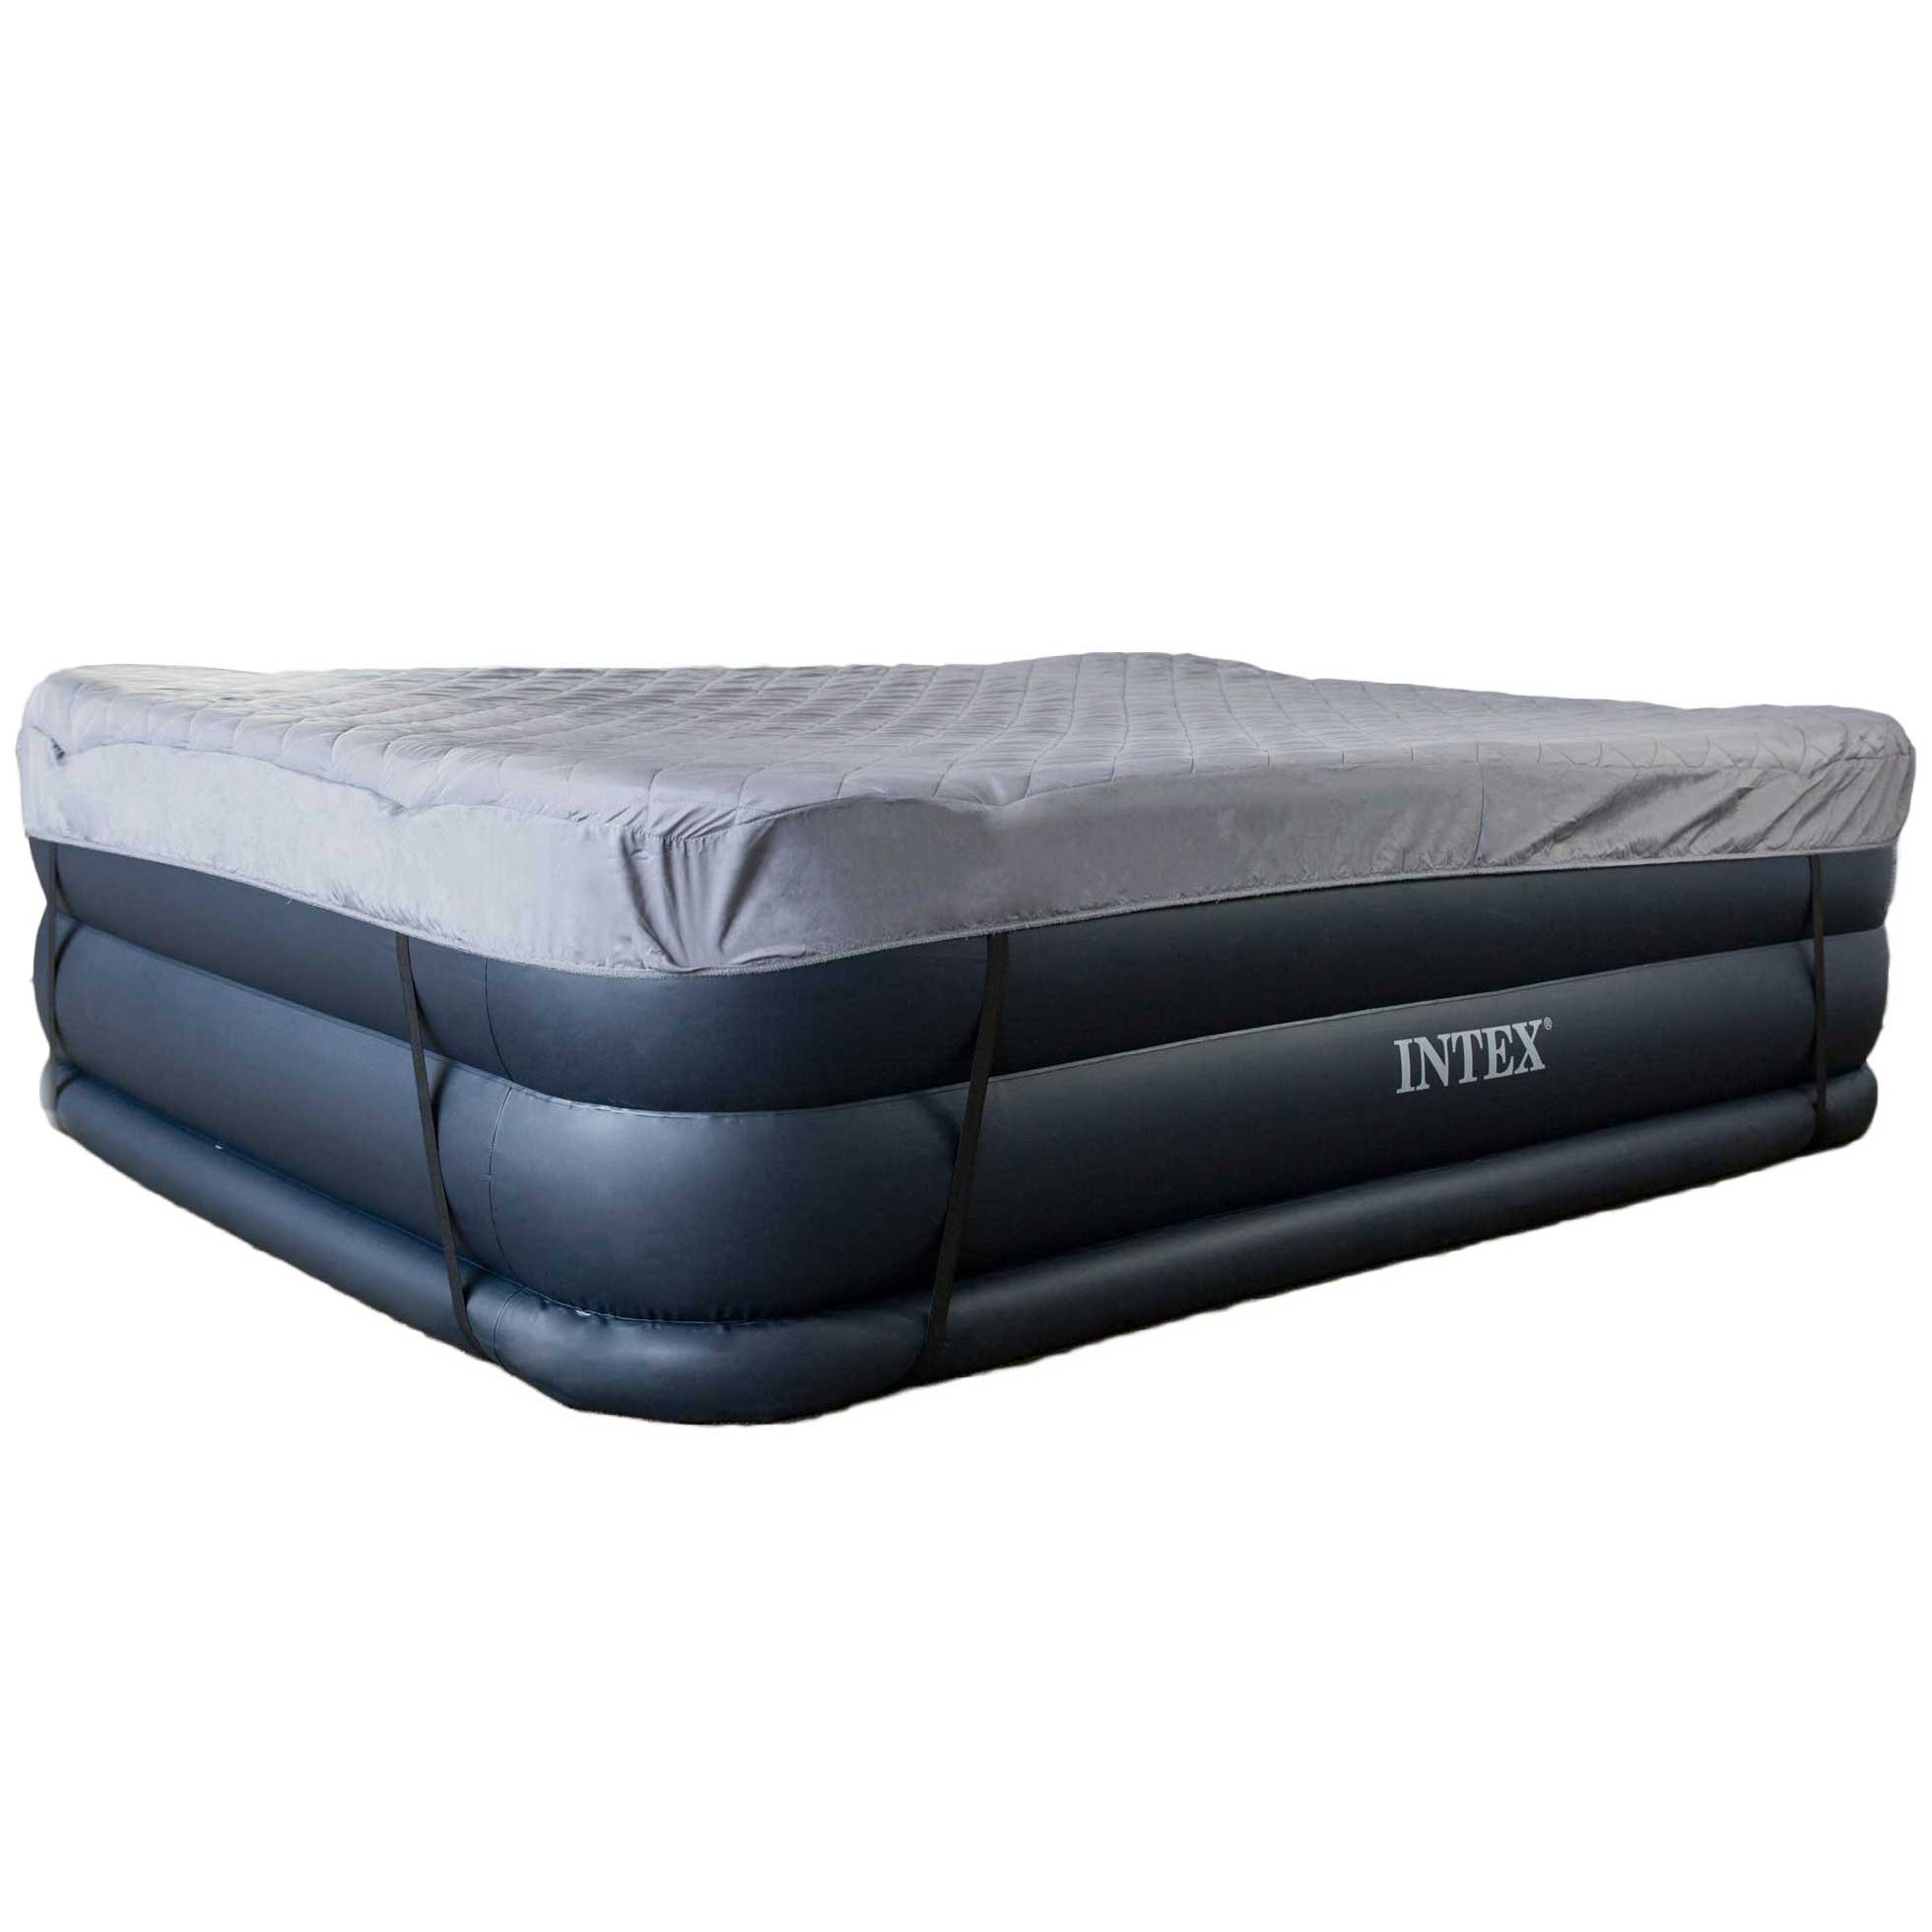 Intex Queen Raised Air Mattress Bed with Built-In Electric Pump + Quilted Cover